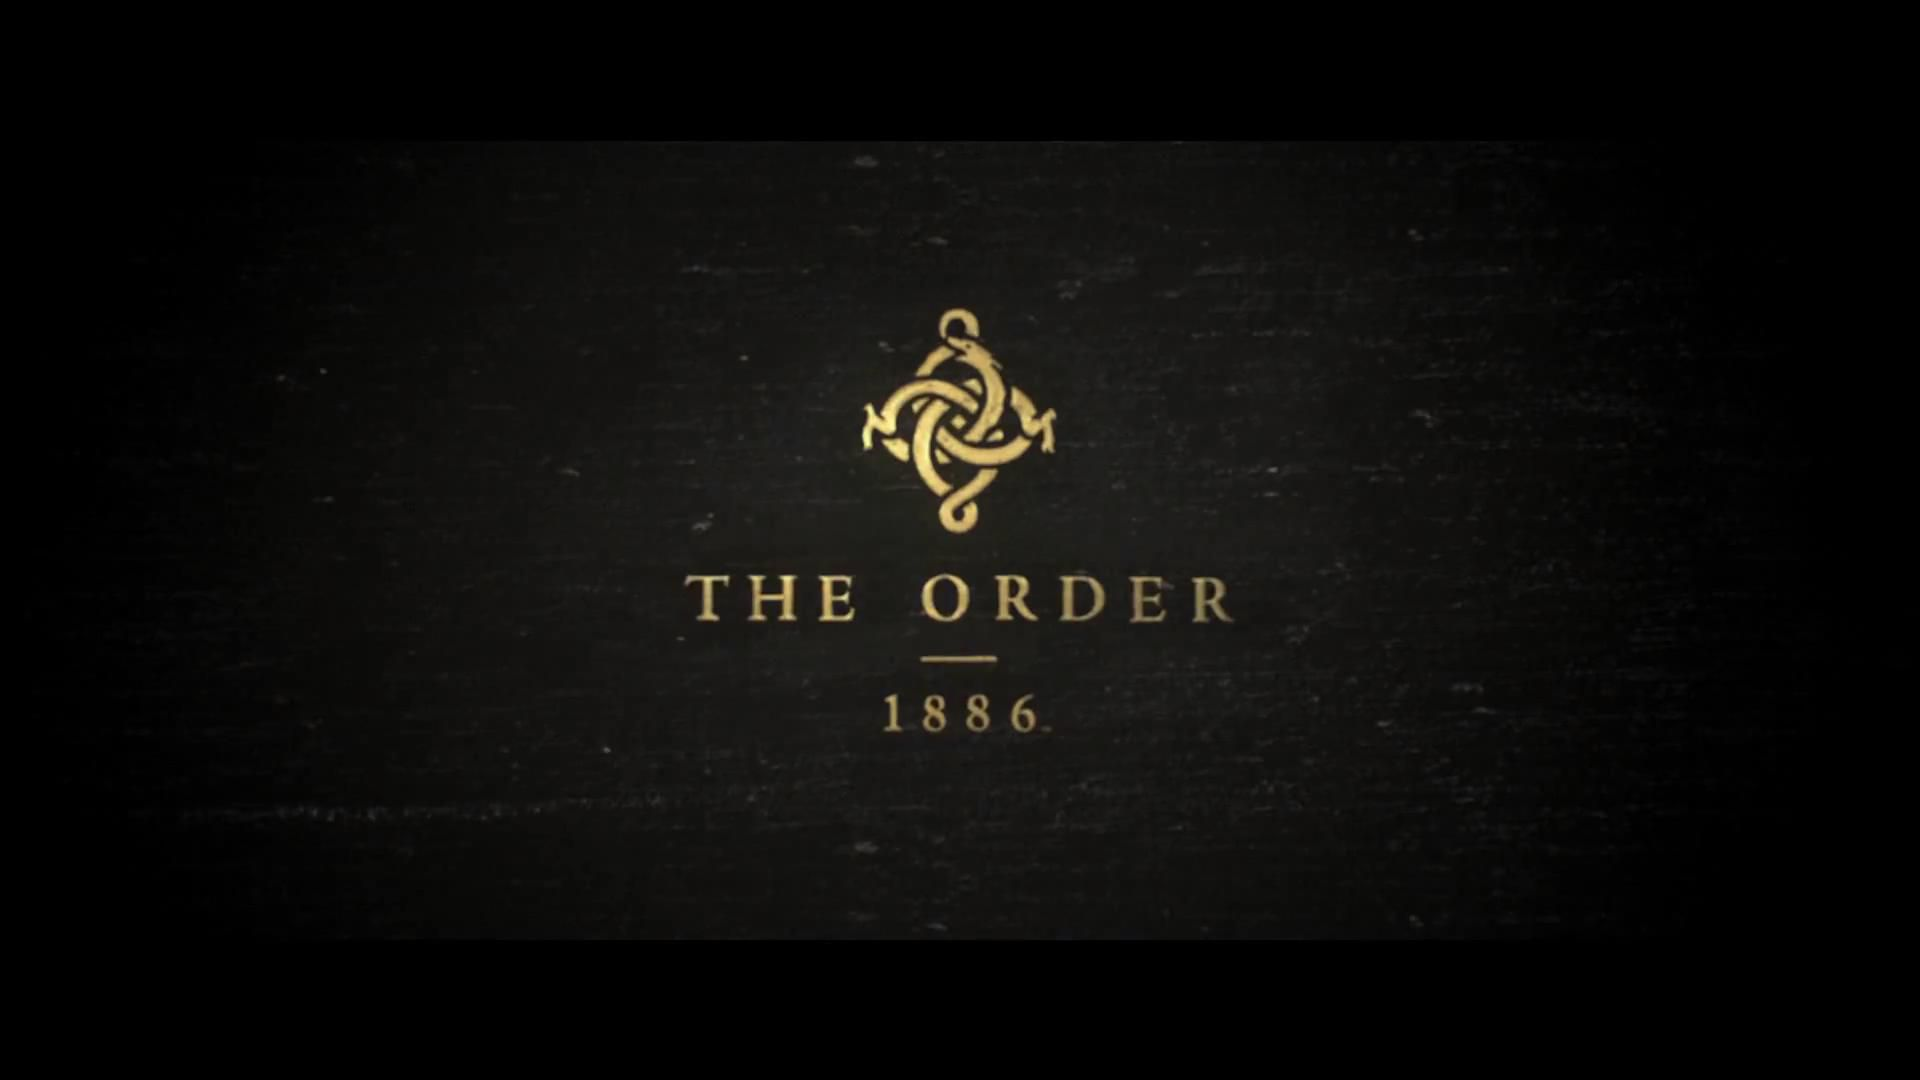 E3 2014: 10 Minuten Gameplay-Video zu The Order 1886